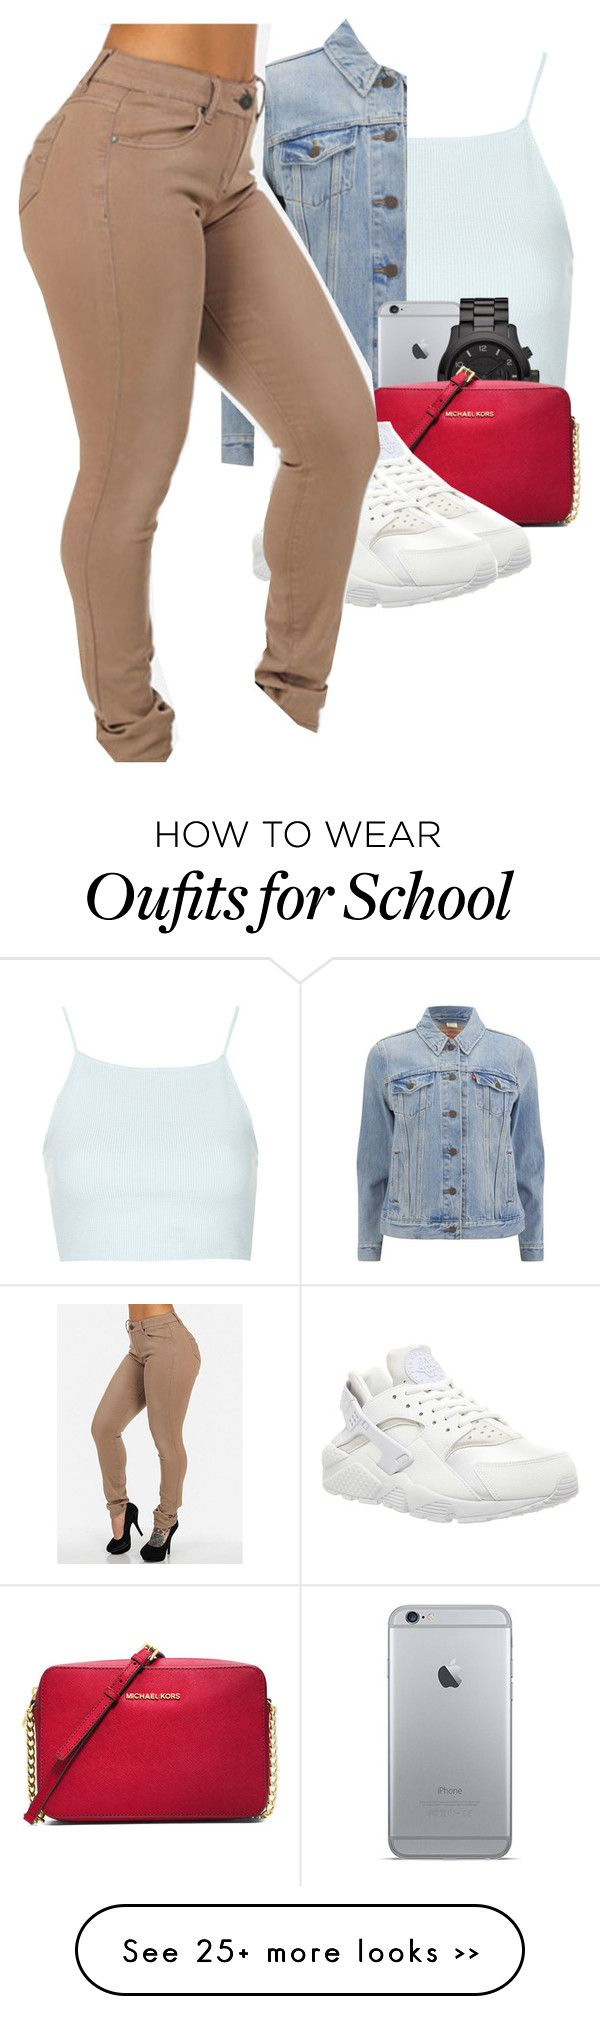 """School flow"" by ajdabaddest on Polyvore featuring Topshop, Levi's, Michael Kors, MICHAEL Michael Kors and NIKE"